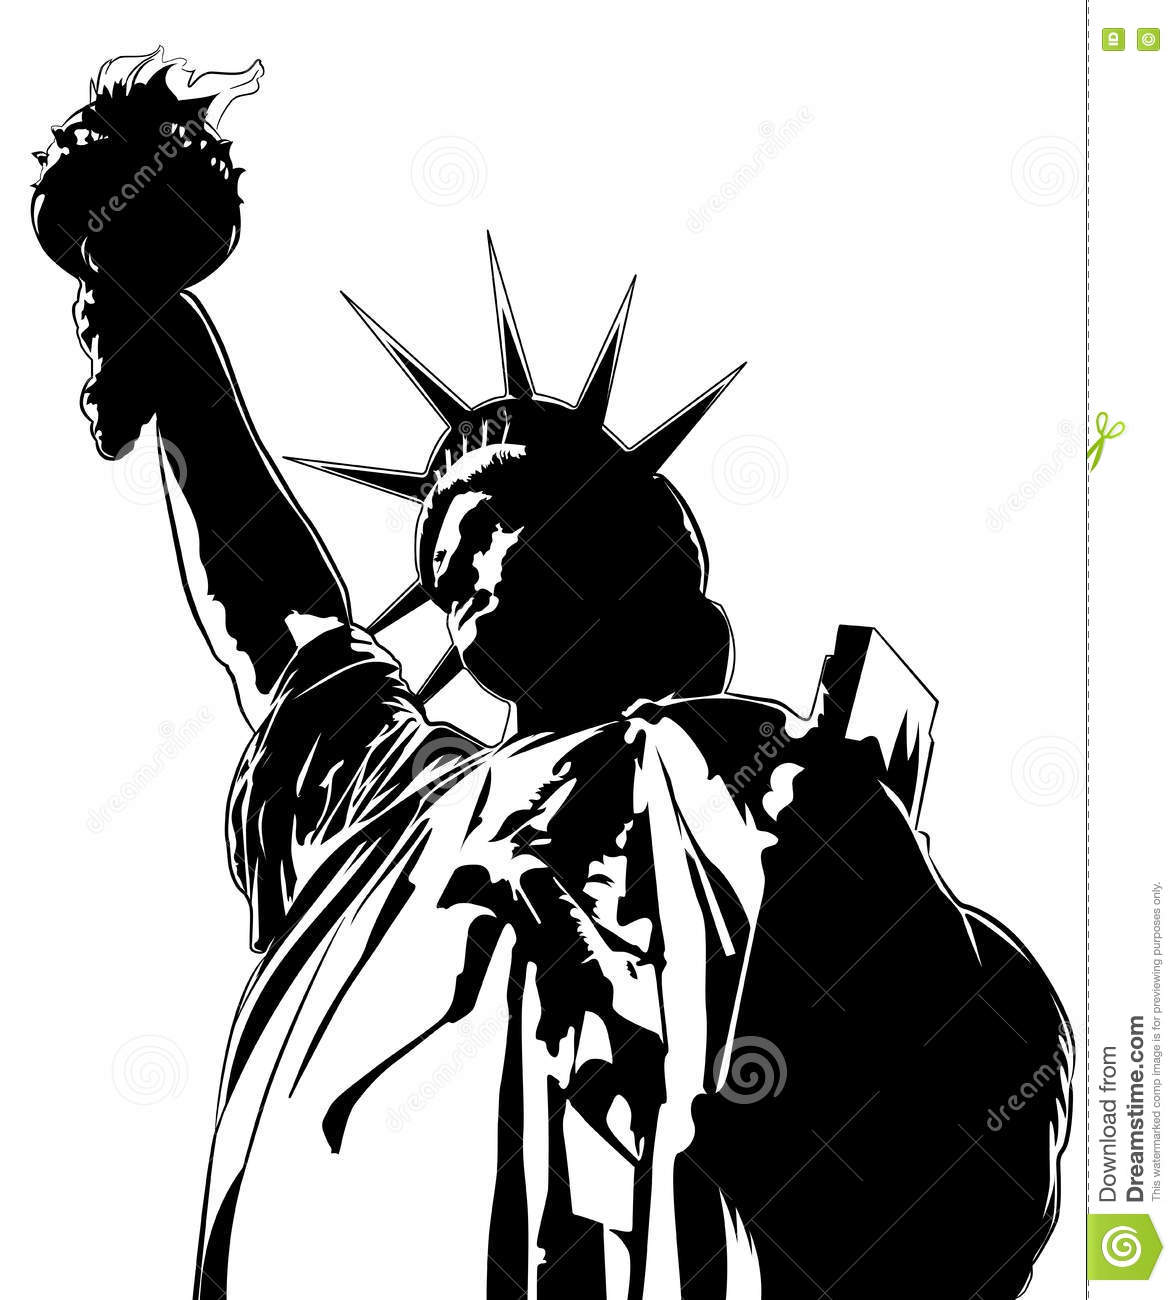 statue of liberty vector image stock vector illustration of rh dreamstime com statue of liberty vector free download statue of liberty vector png